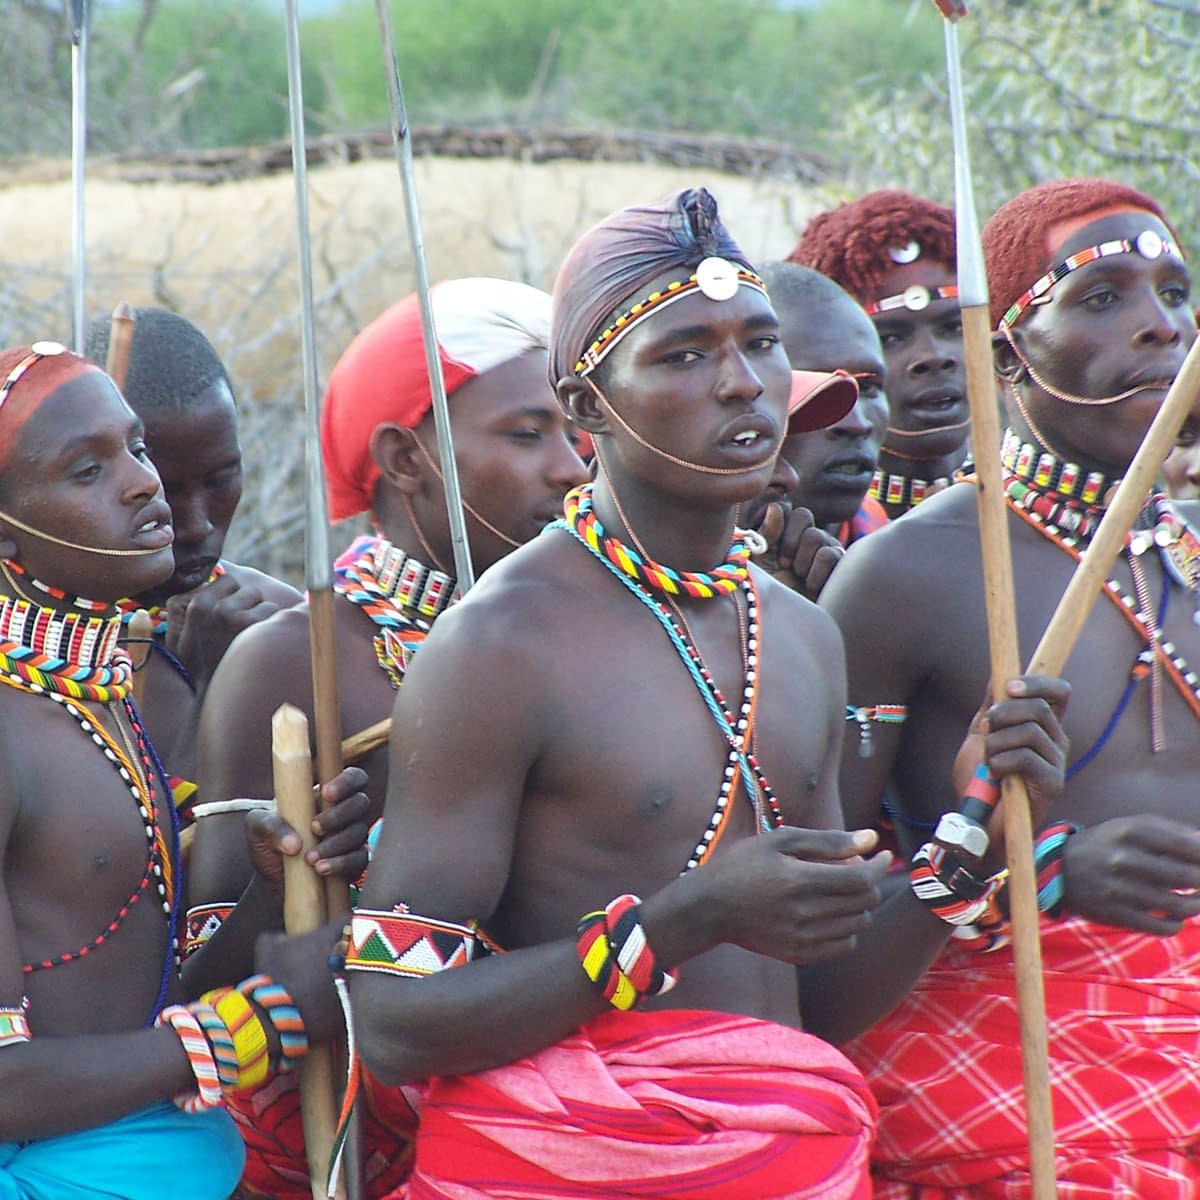 Male Samburu tribesmen in tradition red and blue clothing with woven accessories